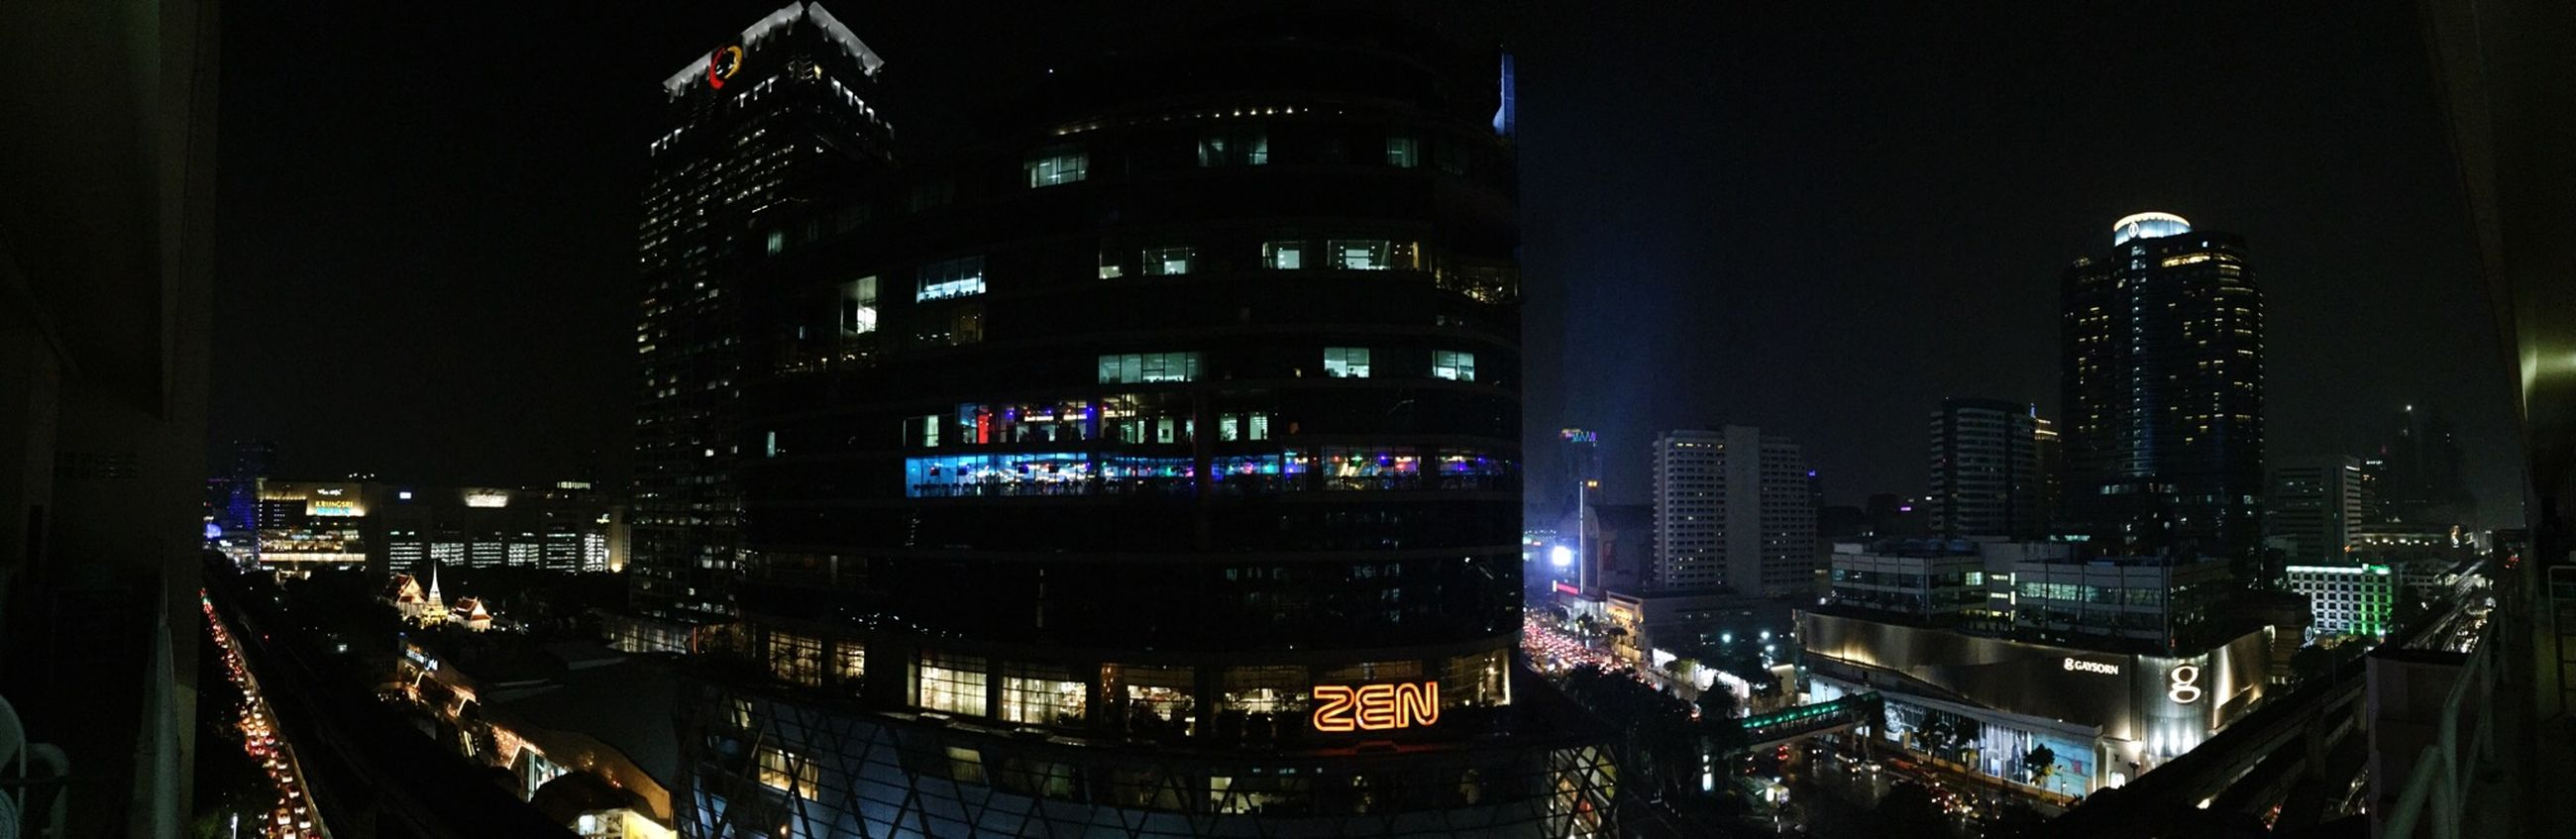 building exterior, night, illuminated, architecture, built structure, city, transportation, street, car, city life, mode of transport, land vehicle, building, street light, city street, road, outdoors, skyscraper, modern, incidental people